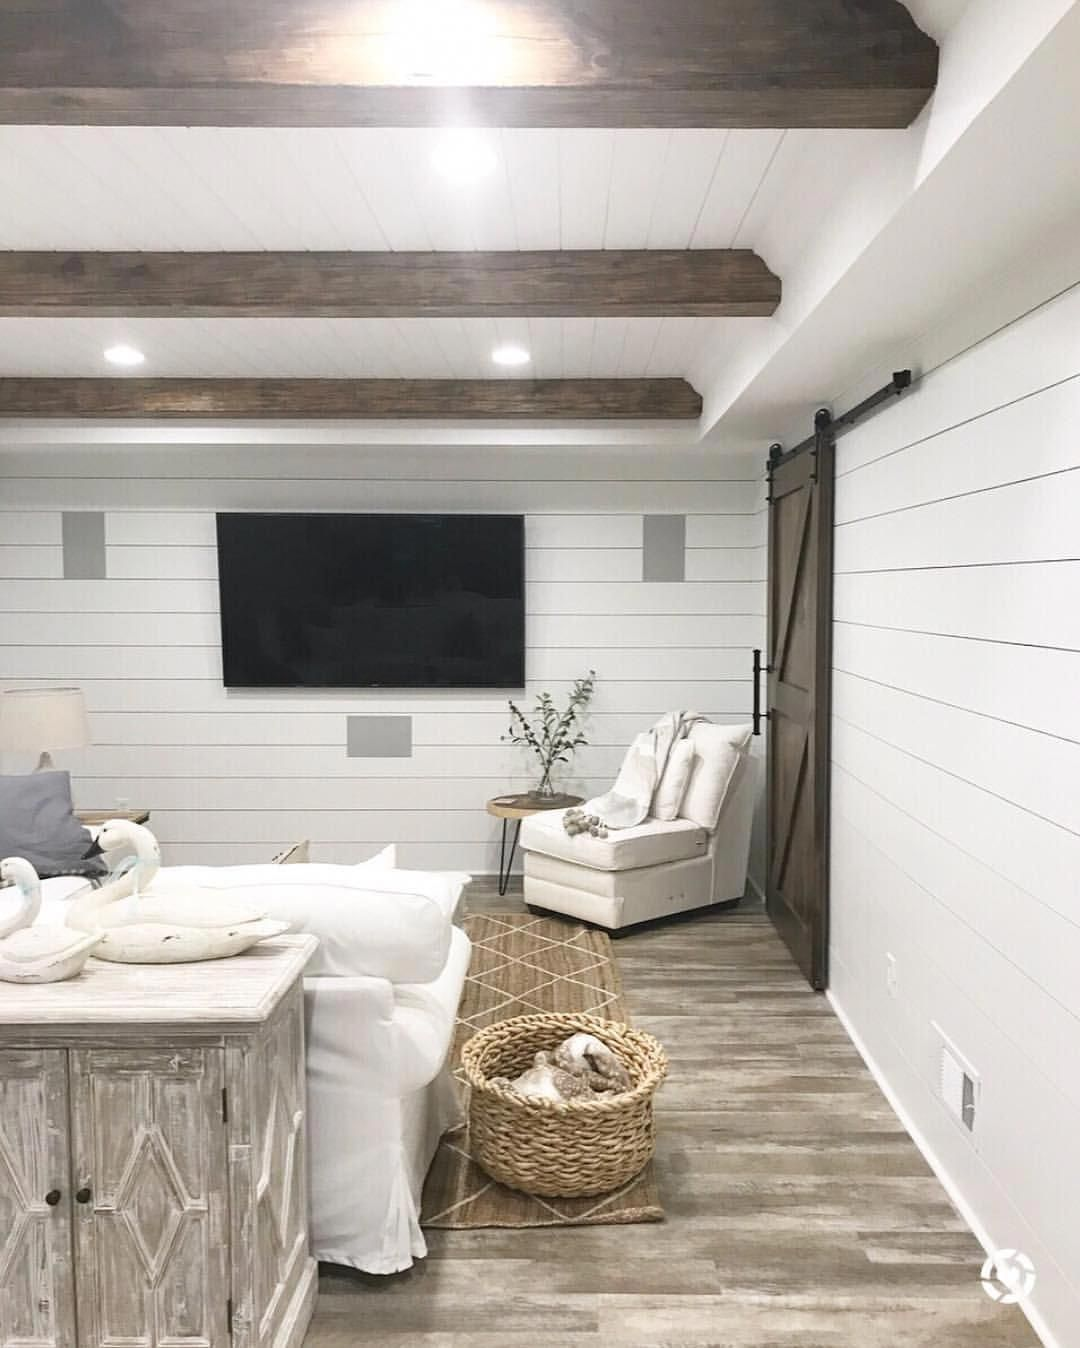 Home Design Basement Ideas: 8 Accessories For An Entrance To The Refined Decor